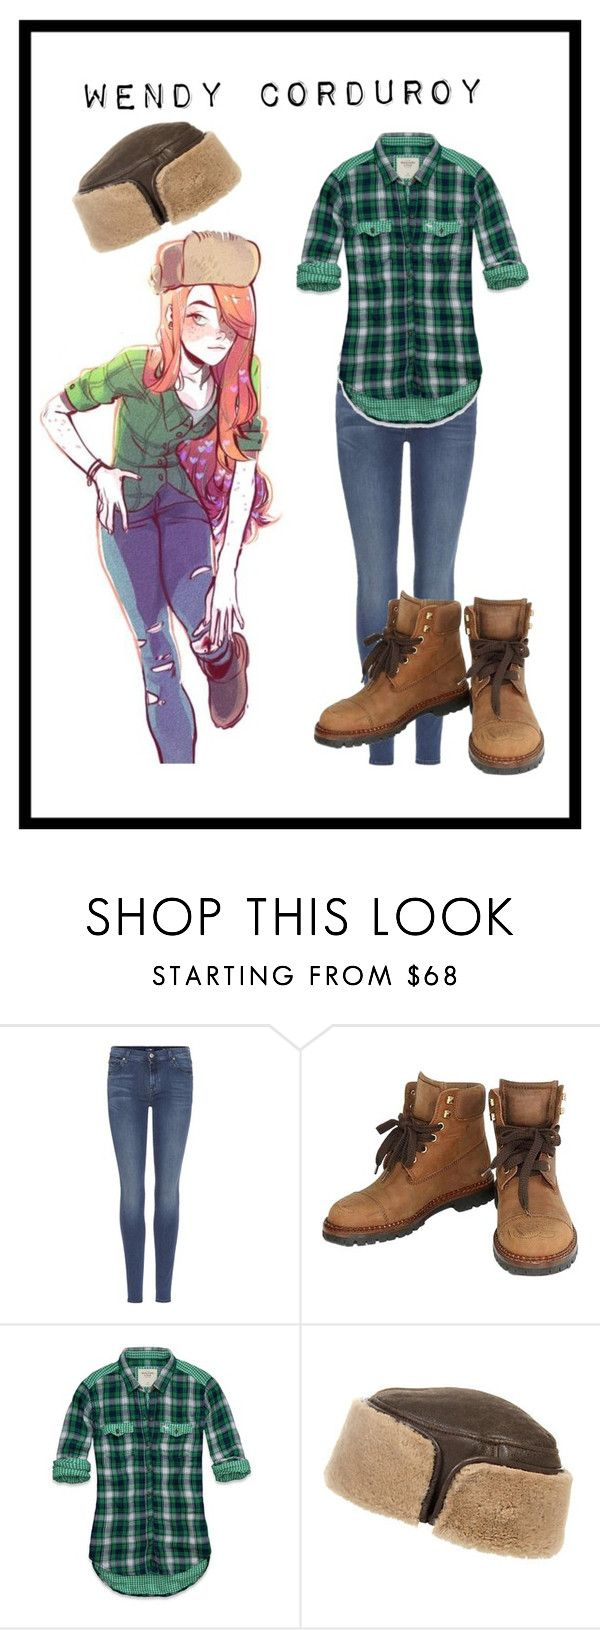 """""""Wendy Corduroy"""" by emily-abella on Polyvore featuring 7 For All Mankind, Chanel, Abercrombie & Fitch and Overland Sheepskin Co."""